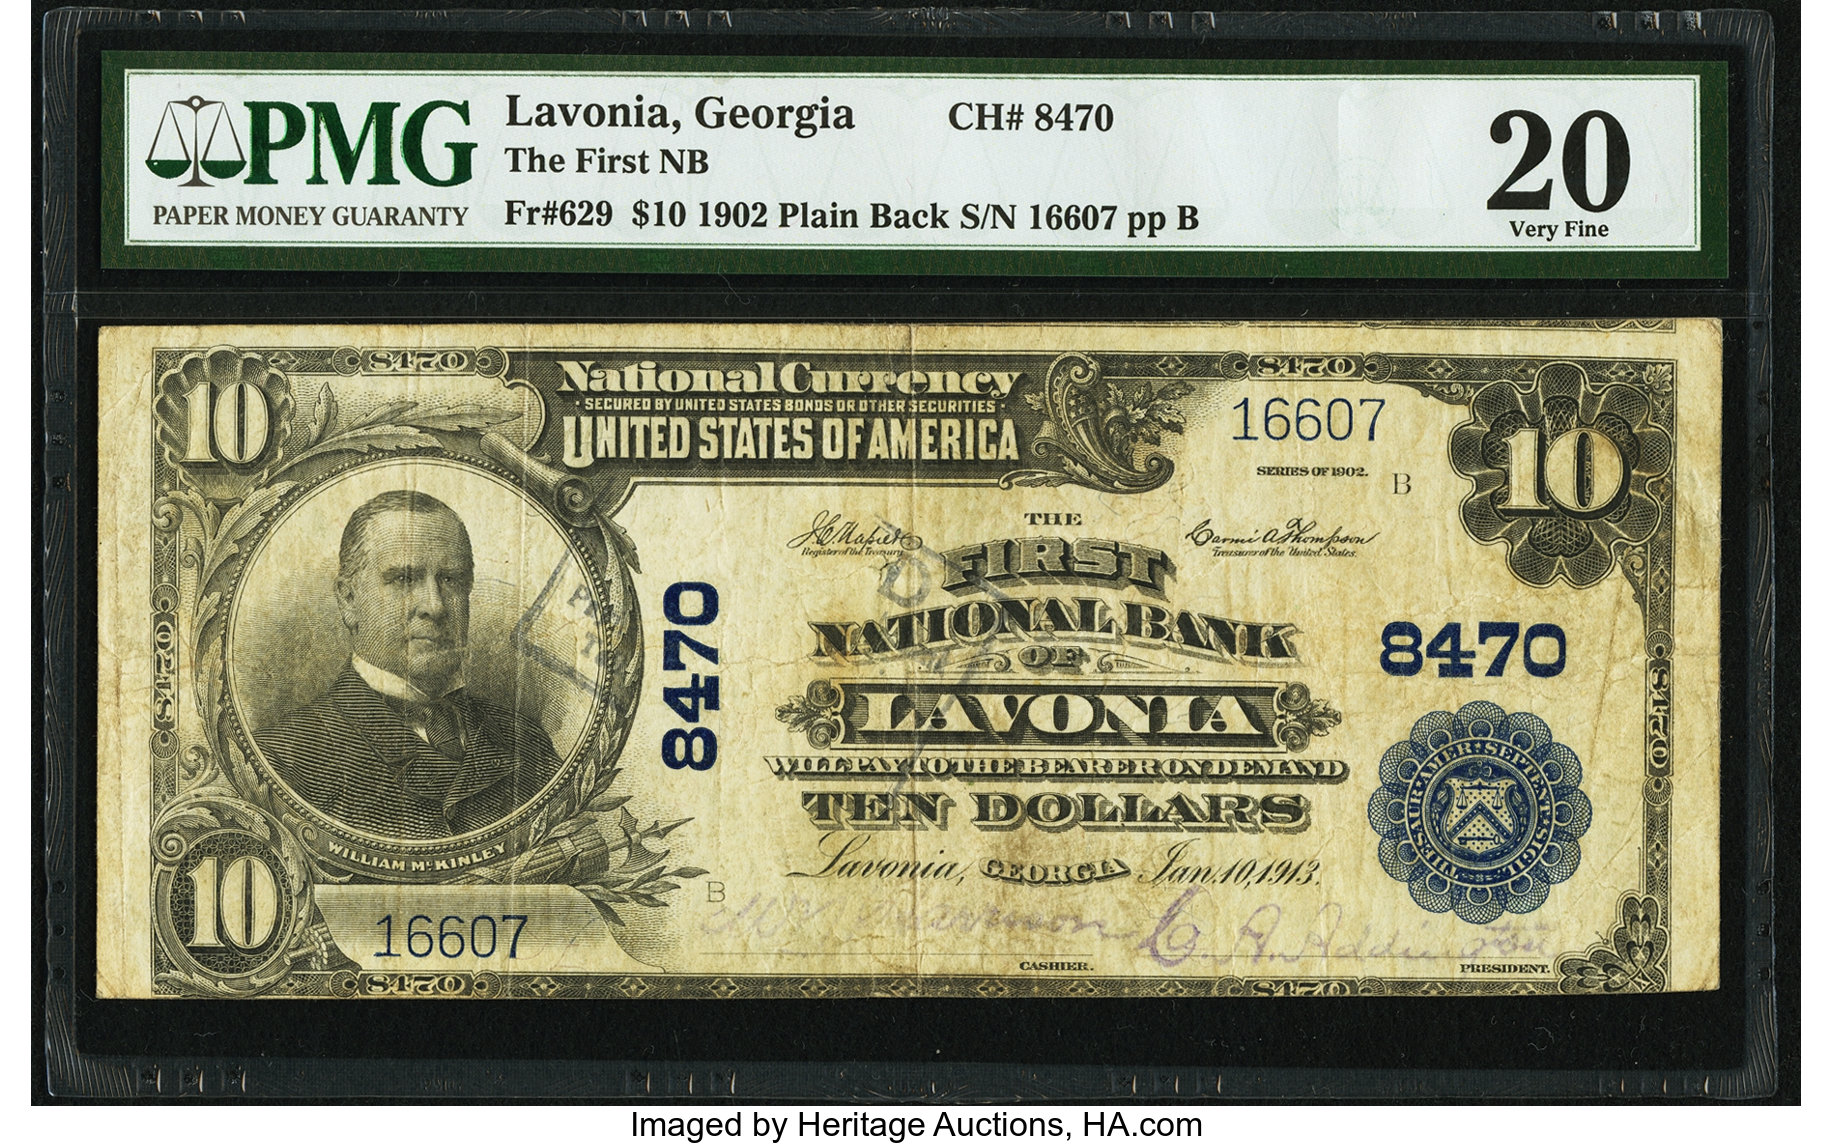 sample image for 1902 3rd Charter Period $10  Plain Back 3rd Issue (Fr.# 629)